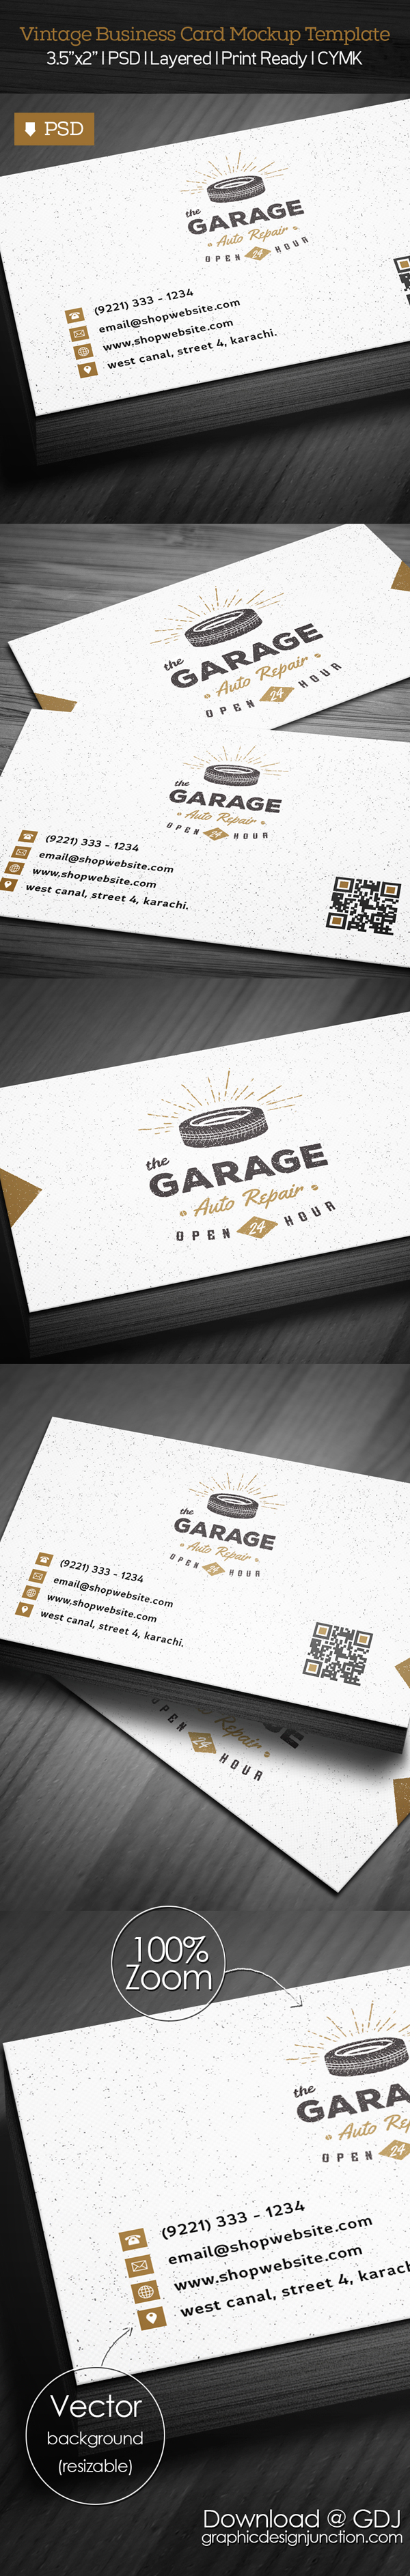 Freebie: Vintage Business Card PSD Template